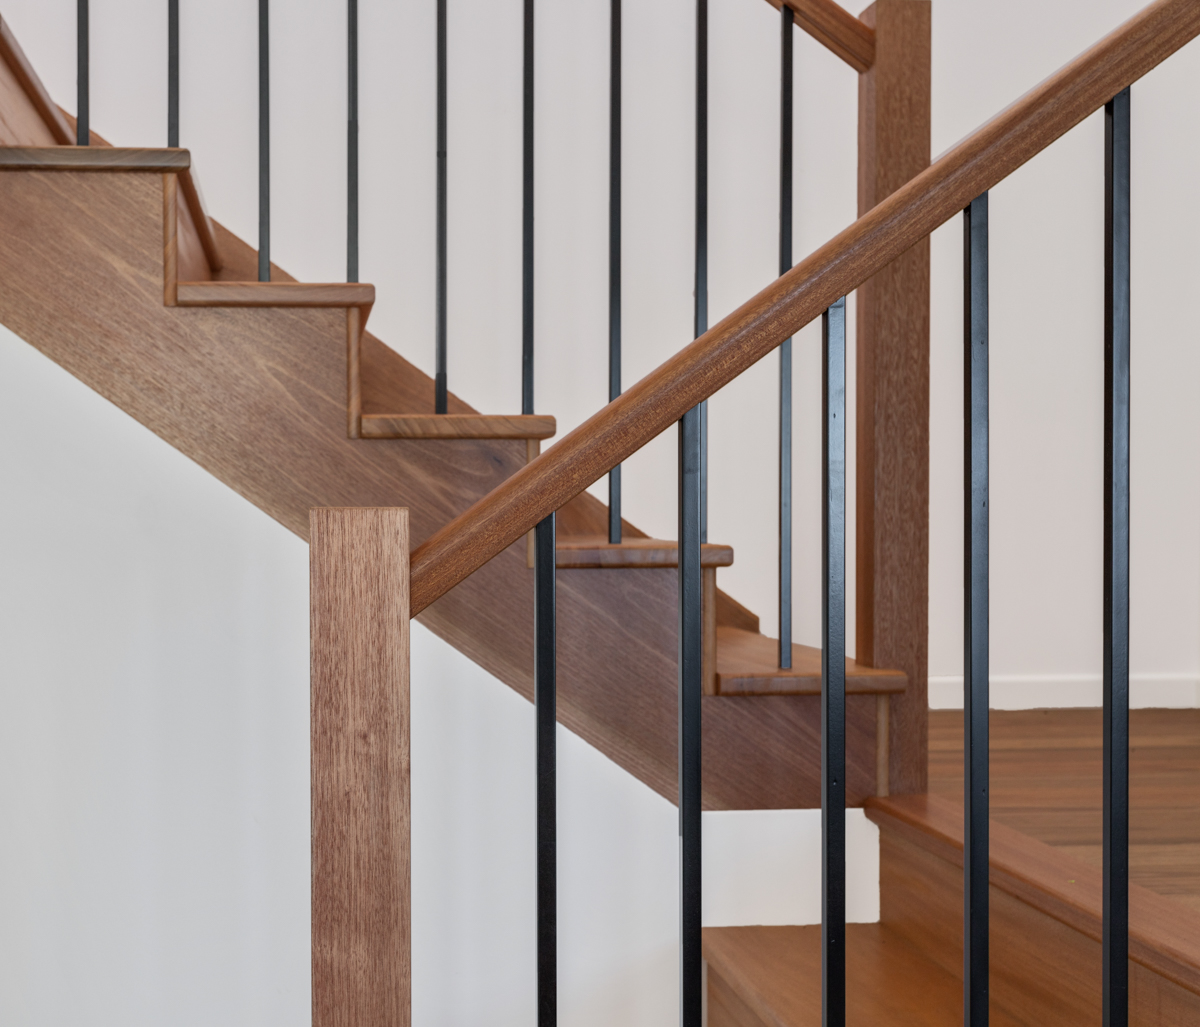 Timber & black steel stair balustrade